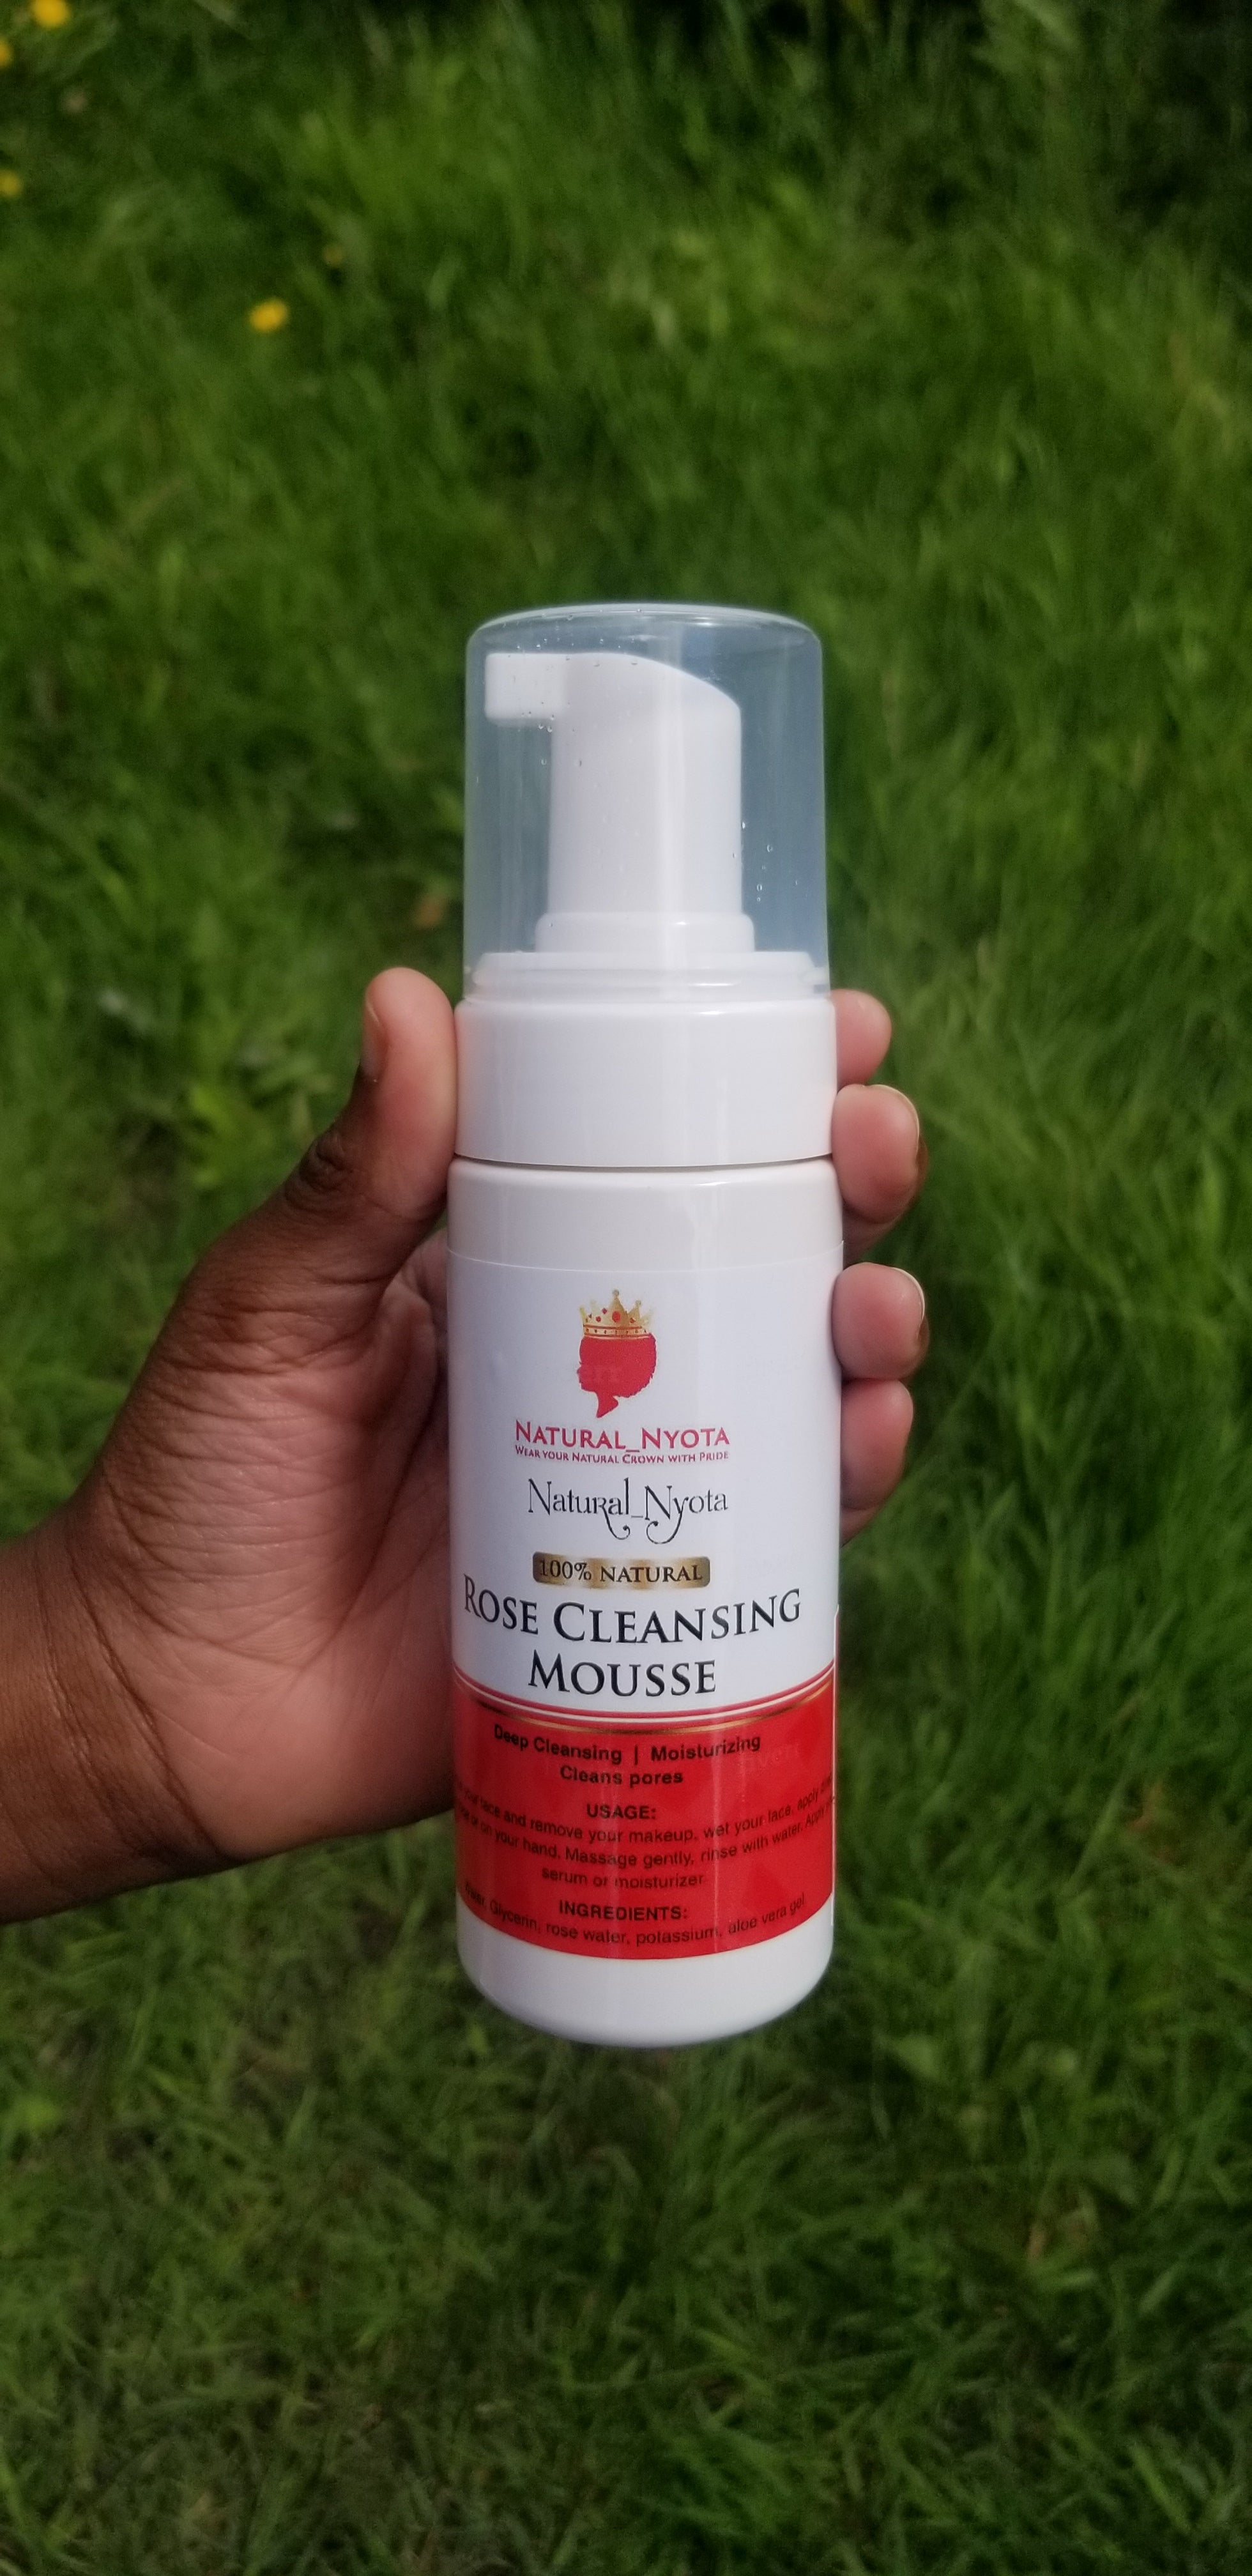 Rose Cleansing